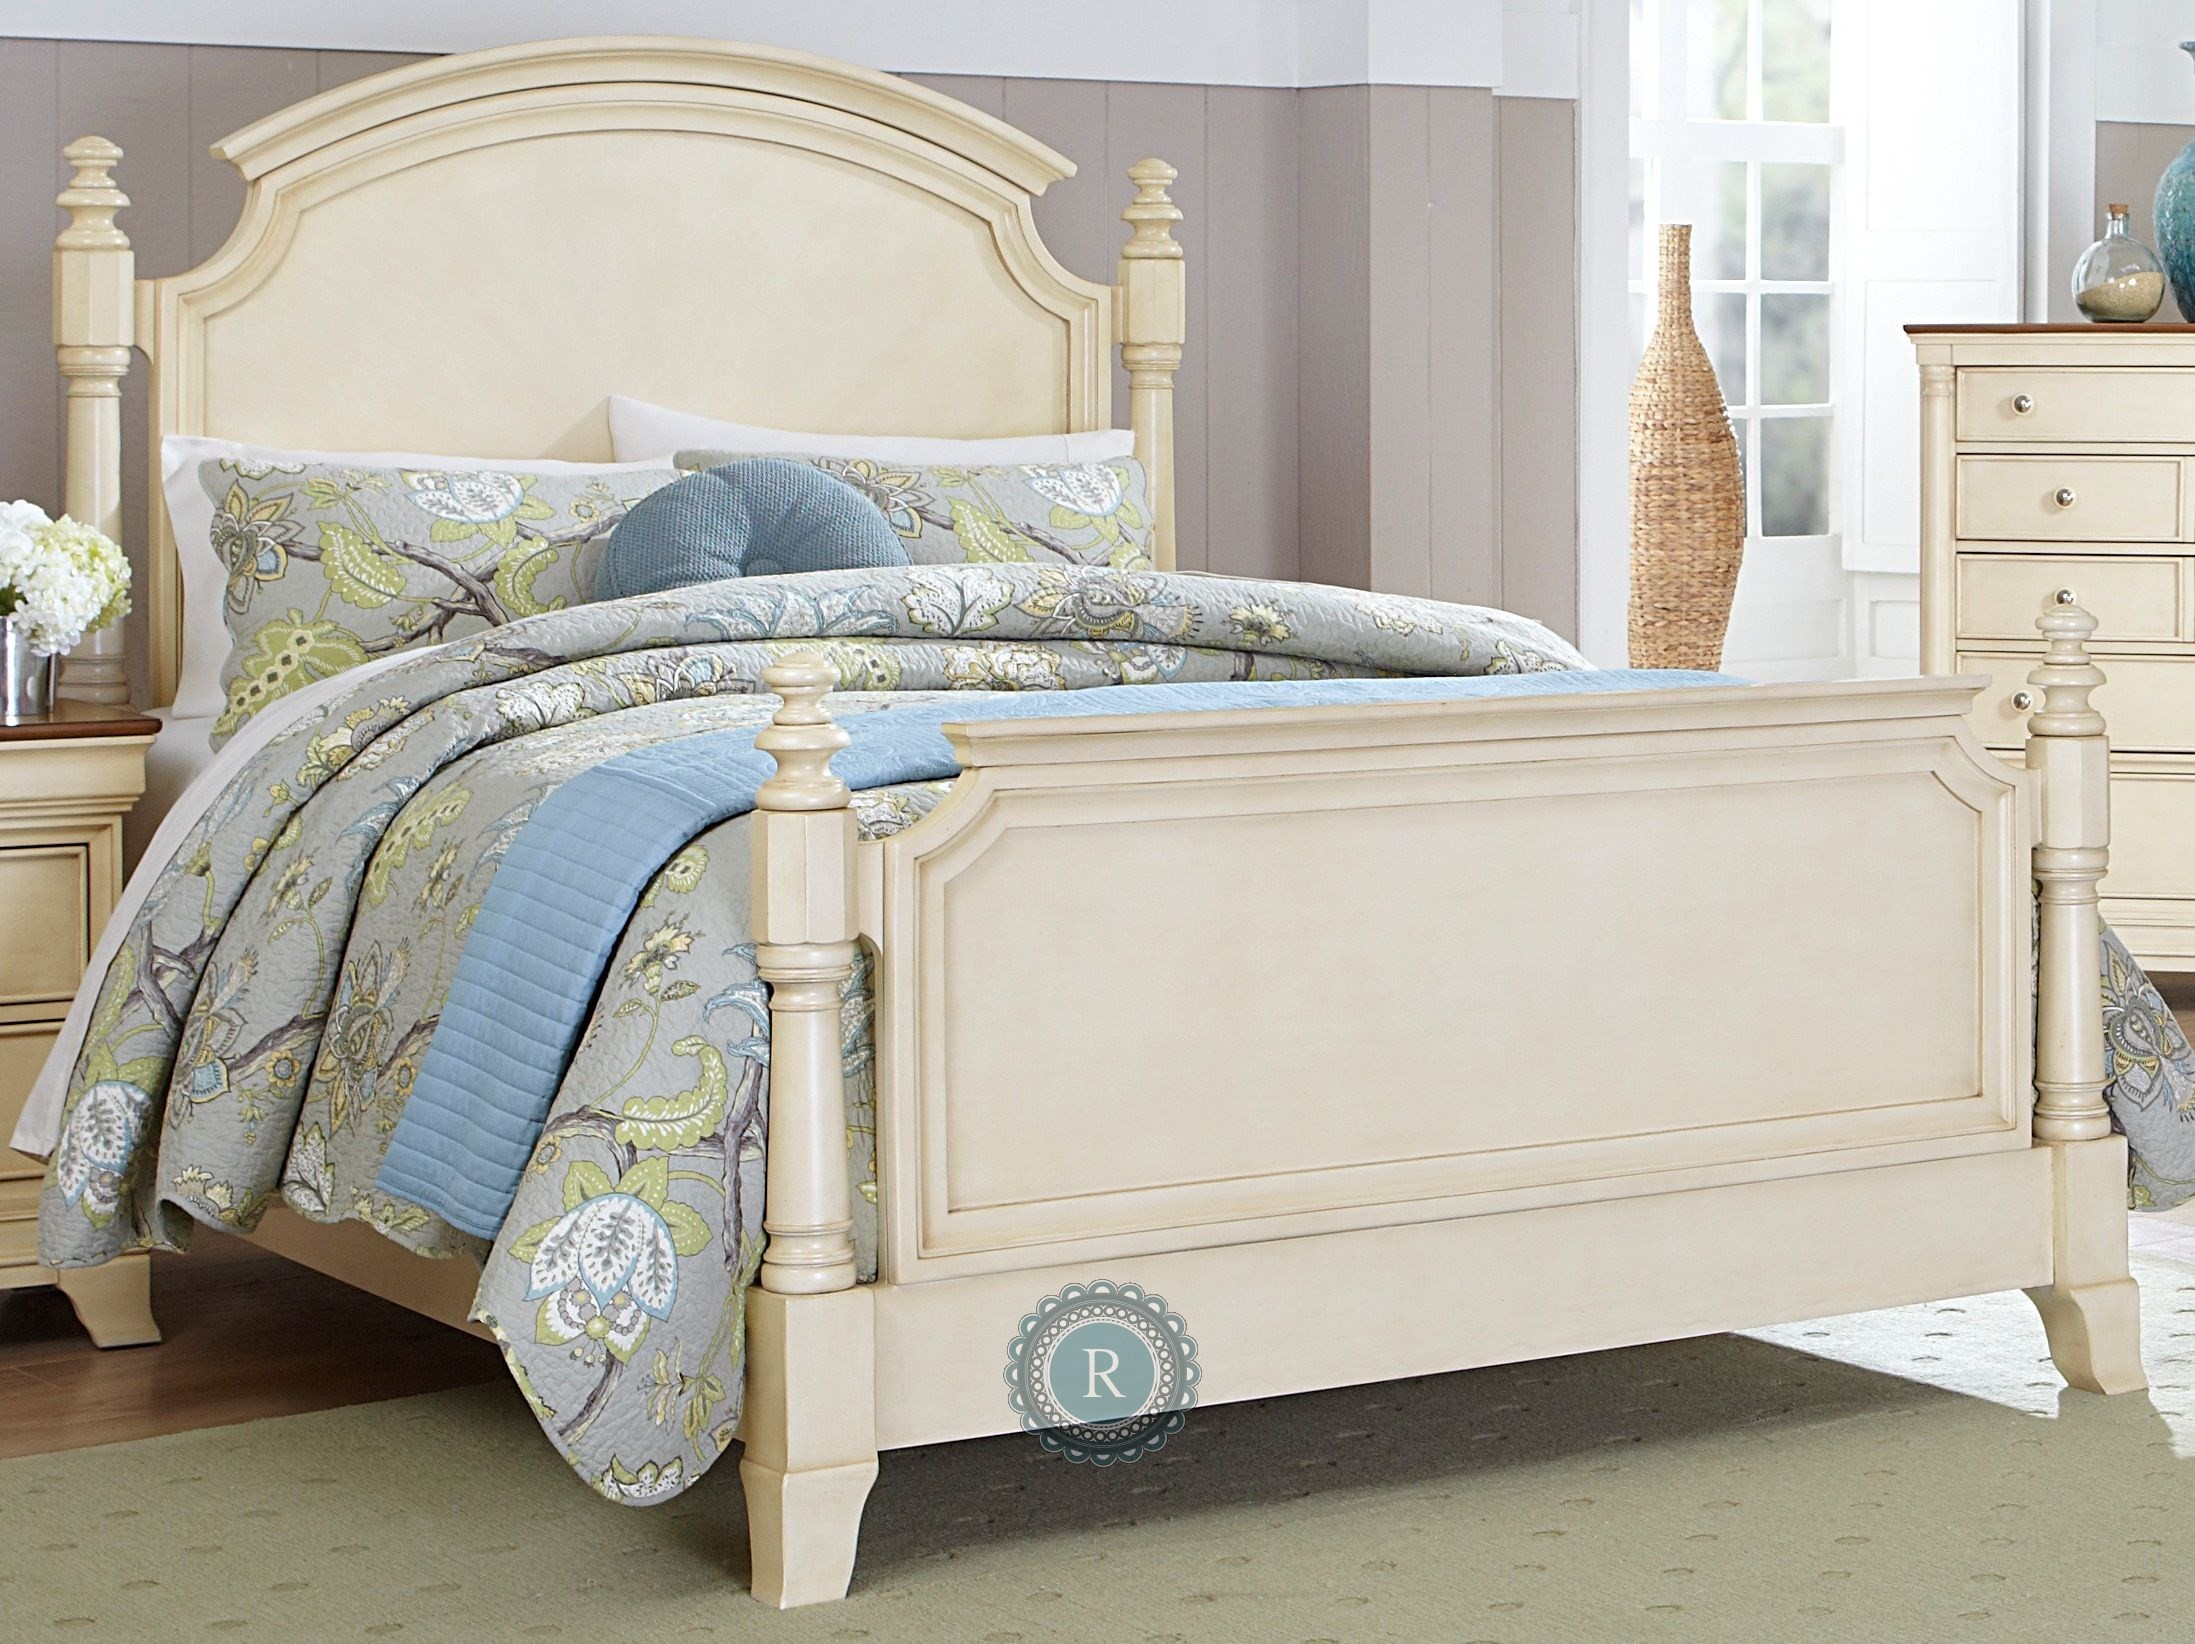 inglewood white king poster bed from homelegance 1402kw